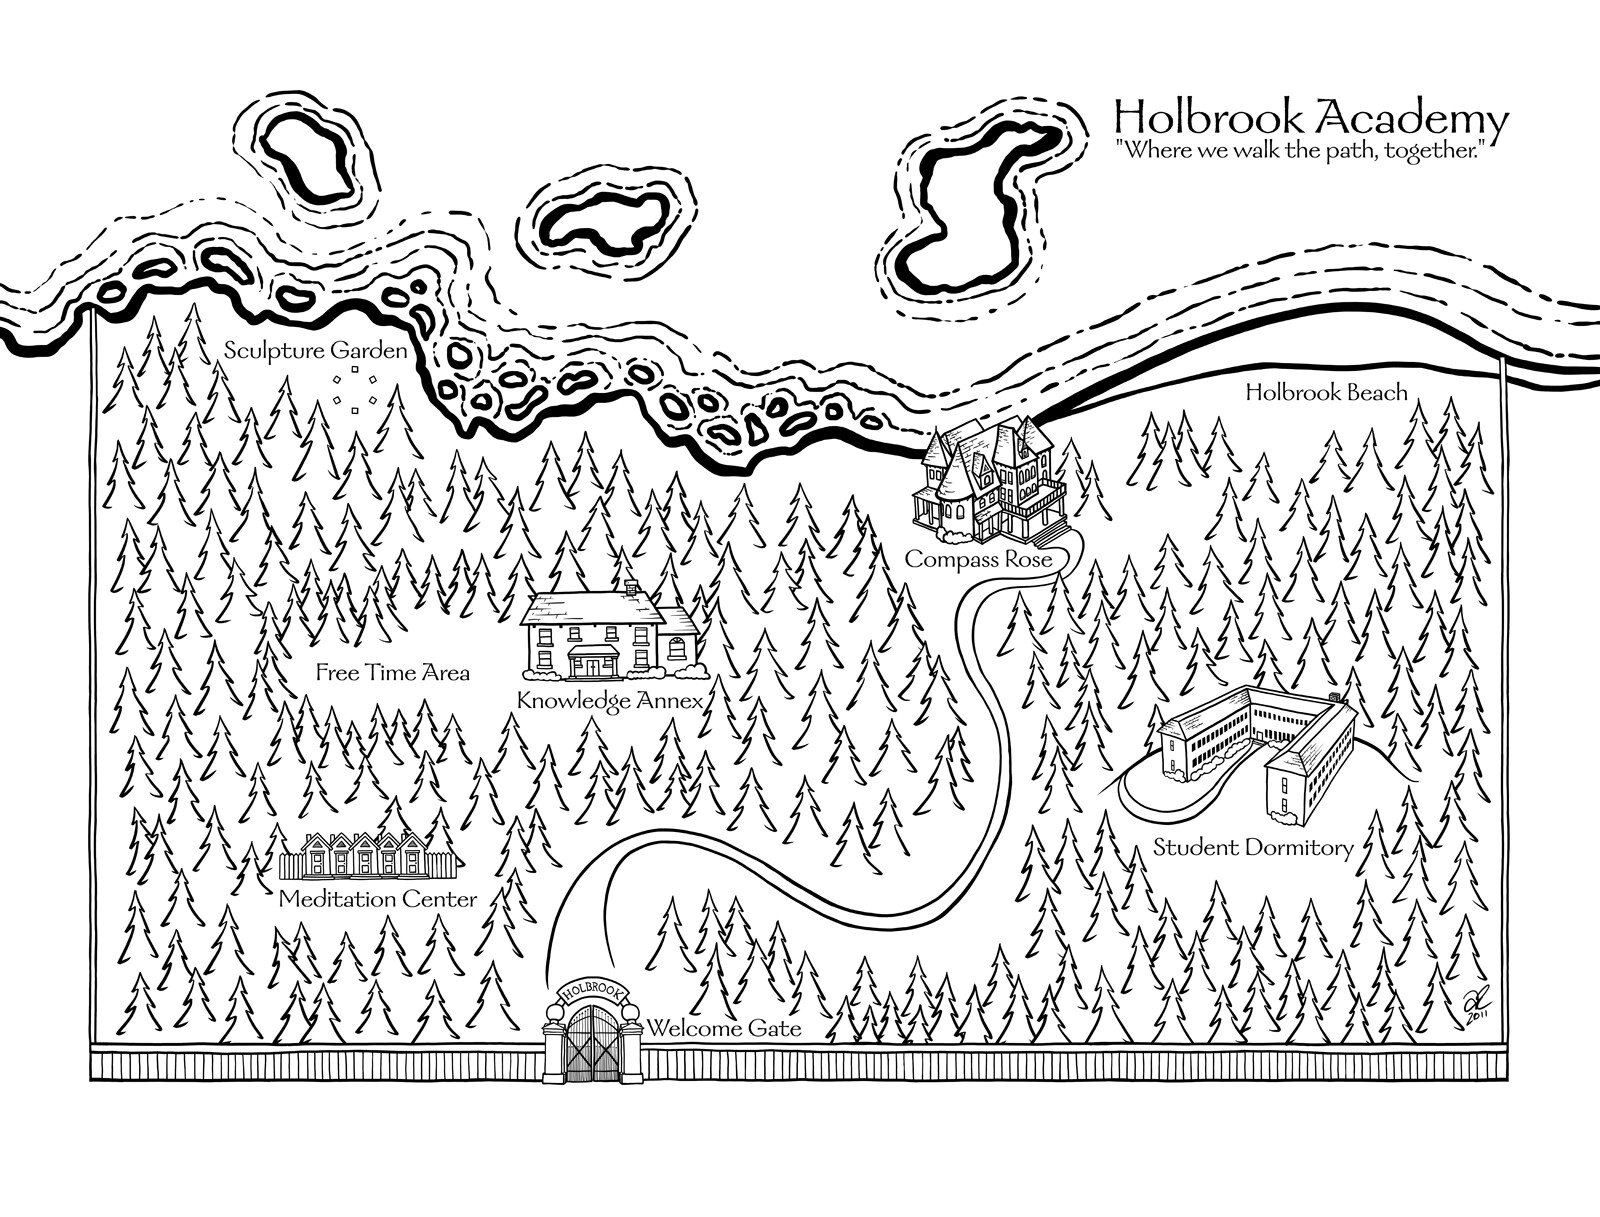 Holbrook Academy Campus Map